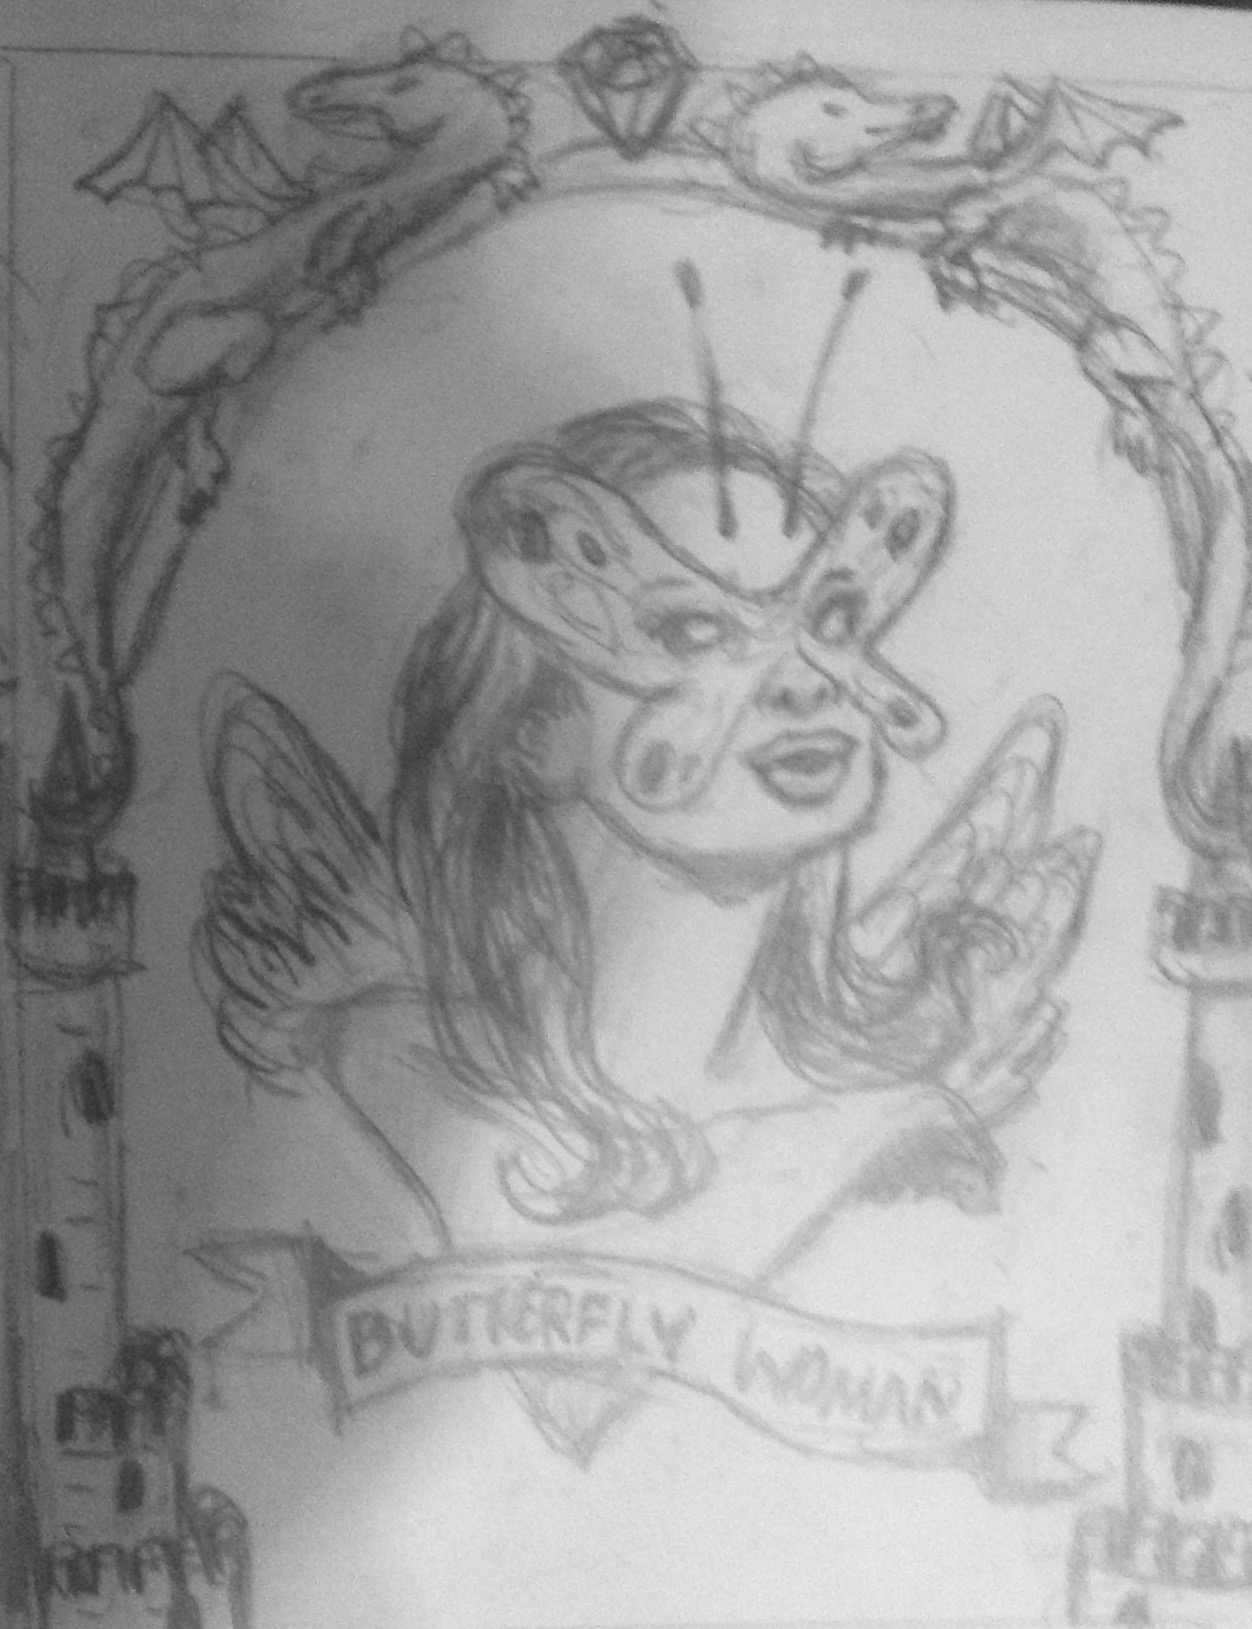 Sketch of the butterfly woman  custom magical creature portrait .